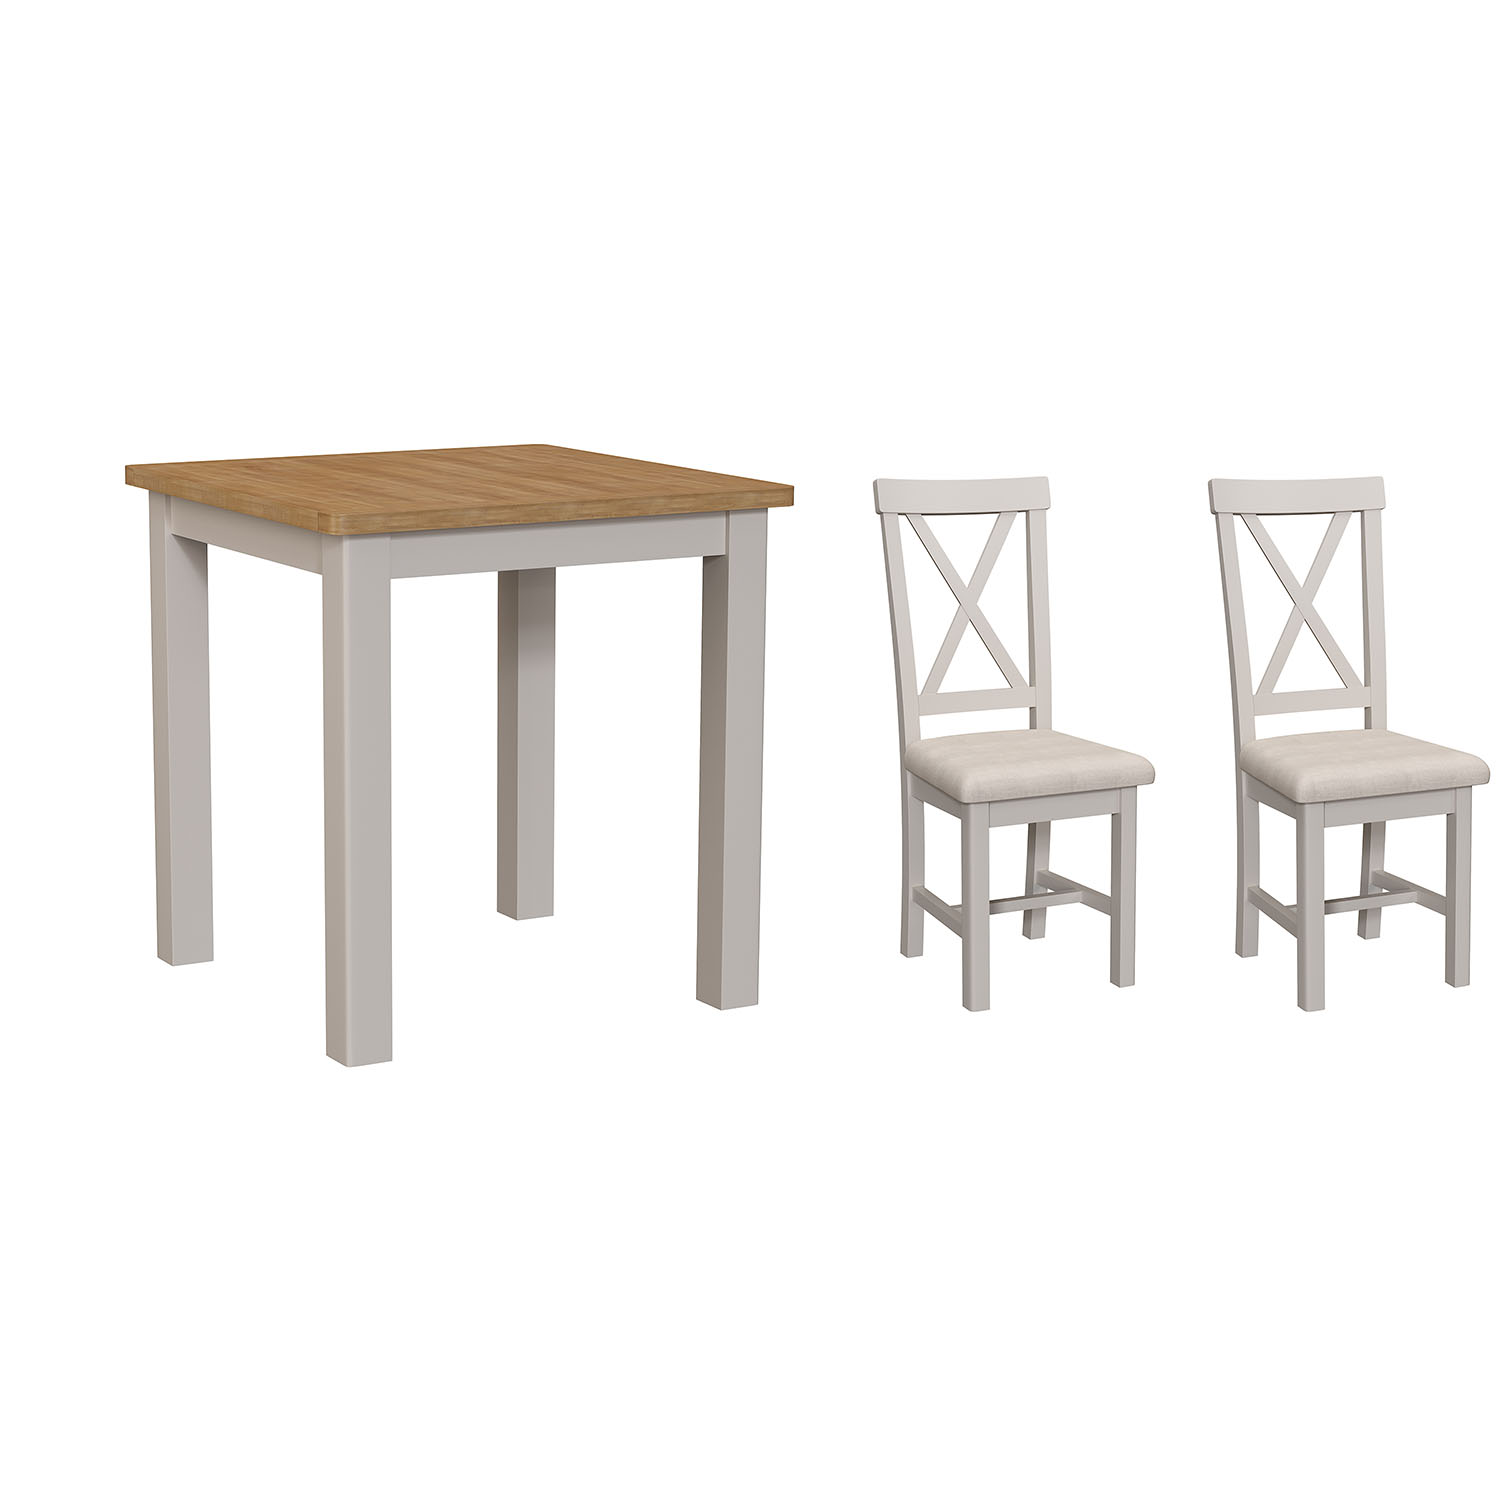 Chiltern Dove Fixed Top Table and x2 Chairs Set